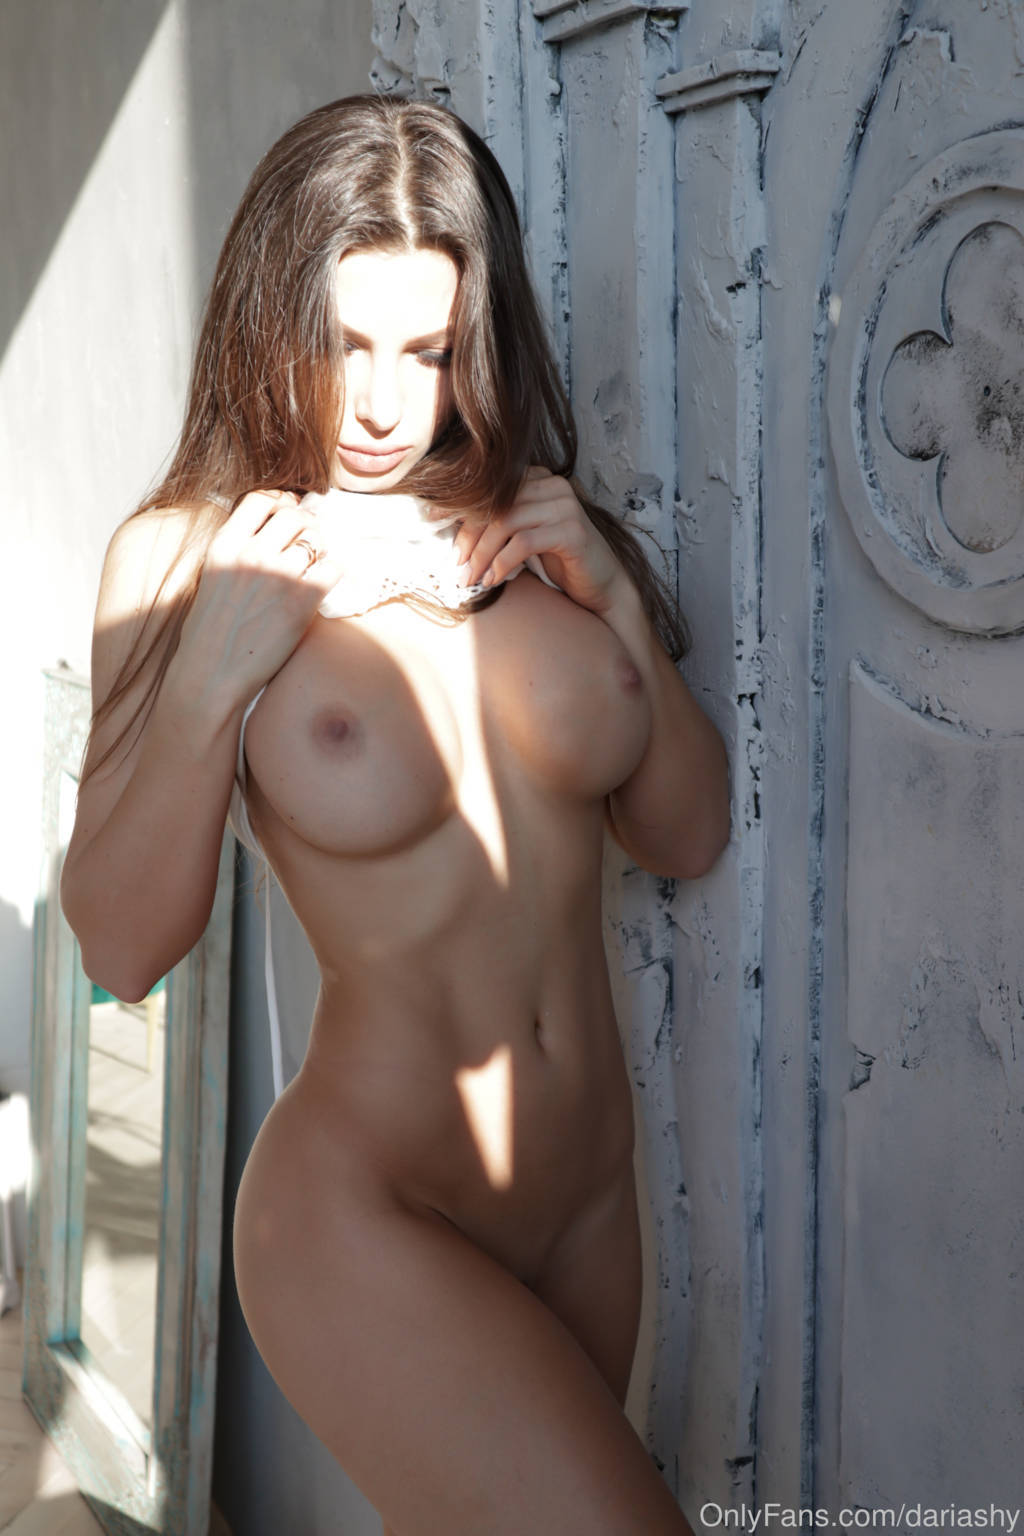 Fit-Naked-Girls-com-Daria-Shy-nude-8